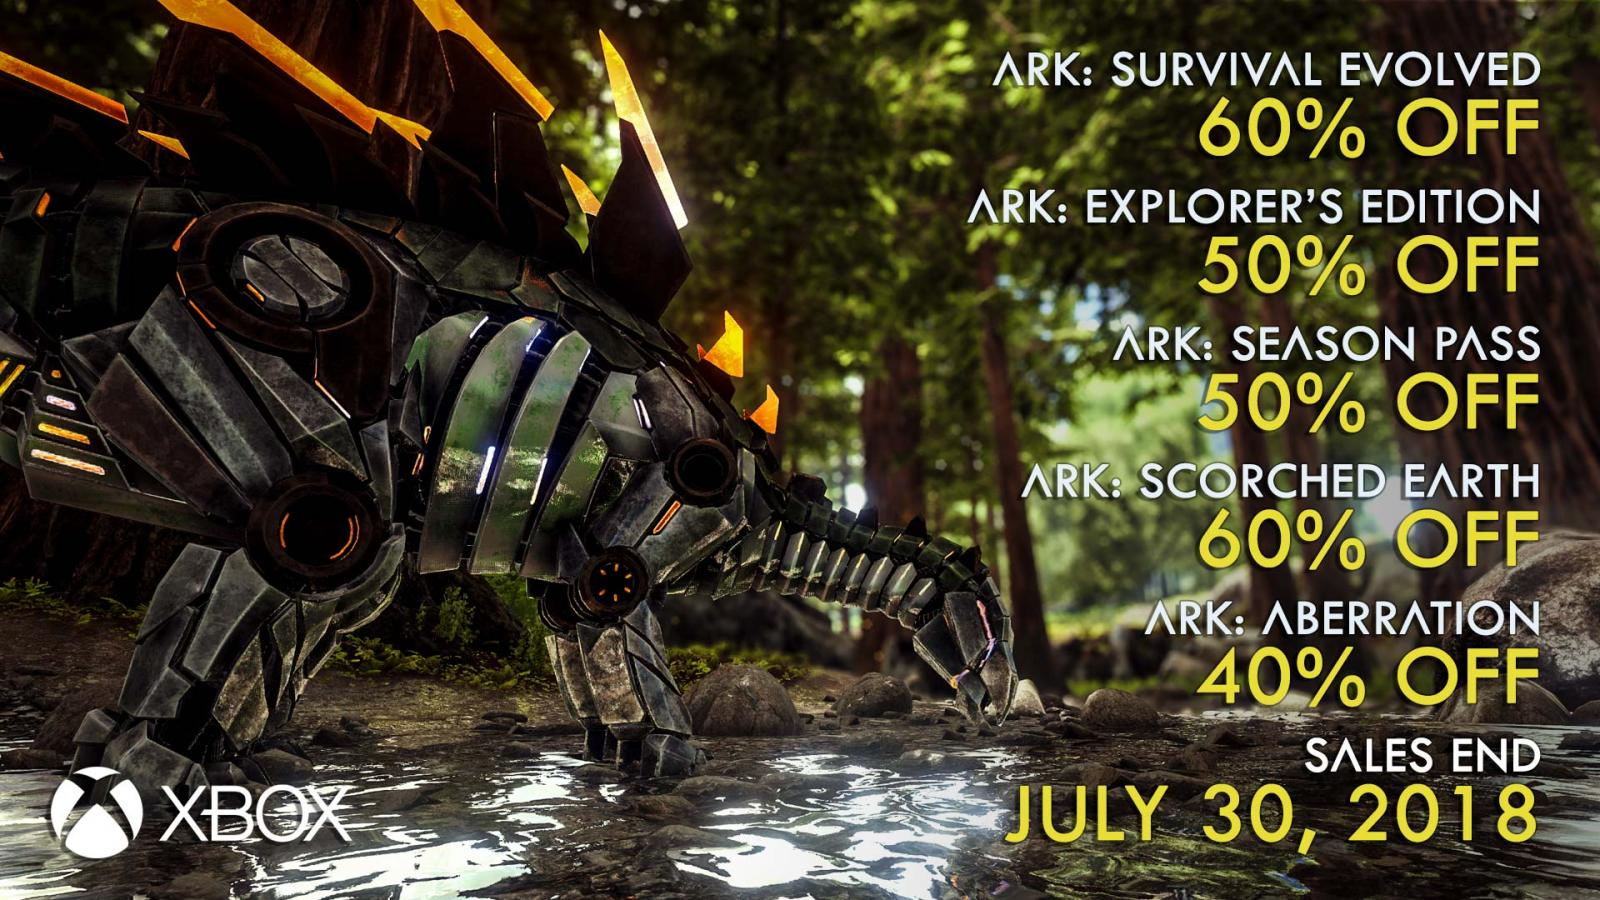 Promo - ARK - Official Community Forums